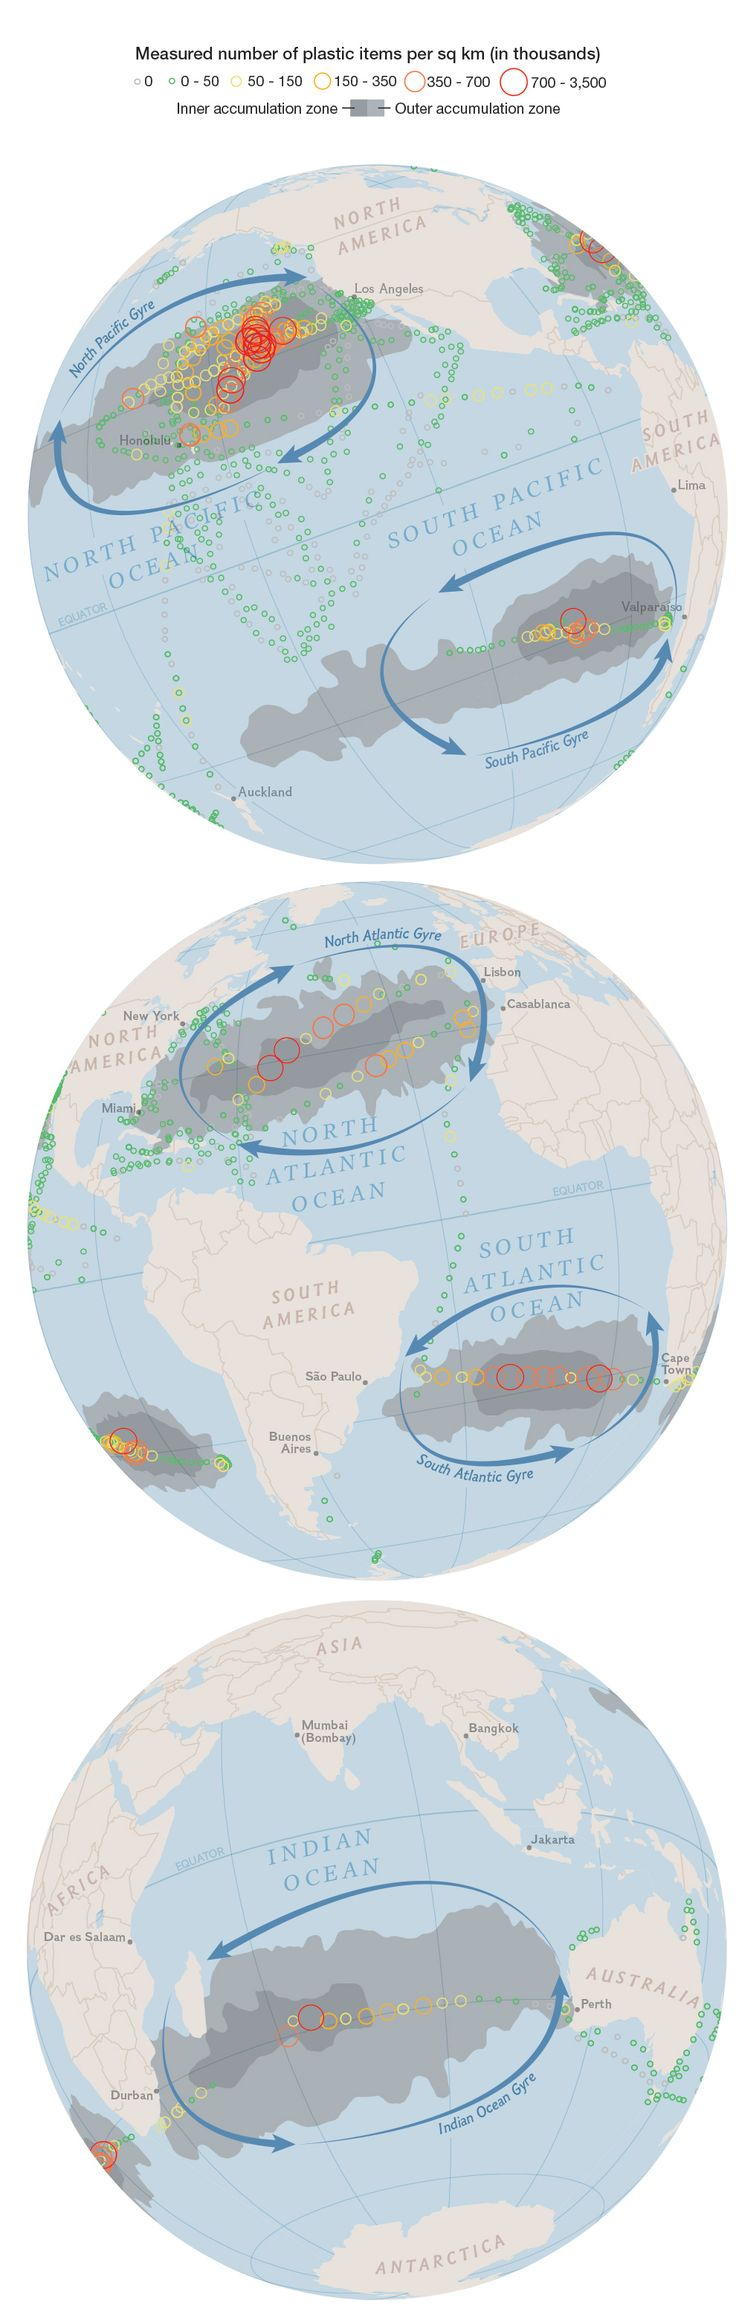 """Ocean currents act as """"conveyor belts"""" carrying debris into massive convergence zones that are estimated to contain millions of plastic items per square kilometer in their inner cores... featured on National Geographic"""